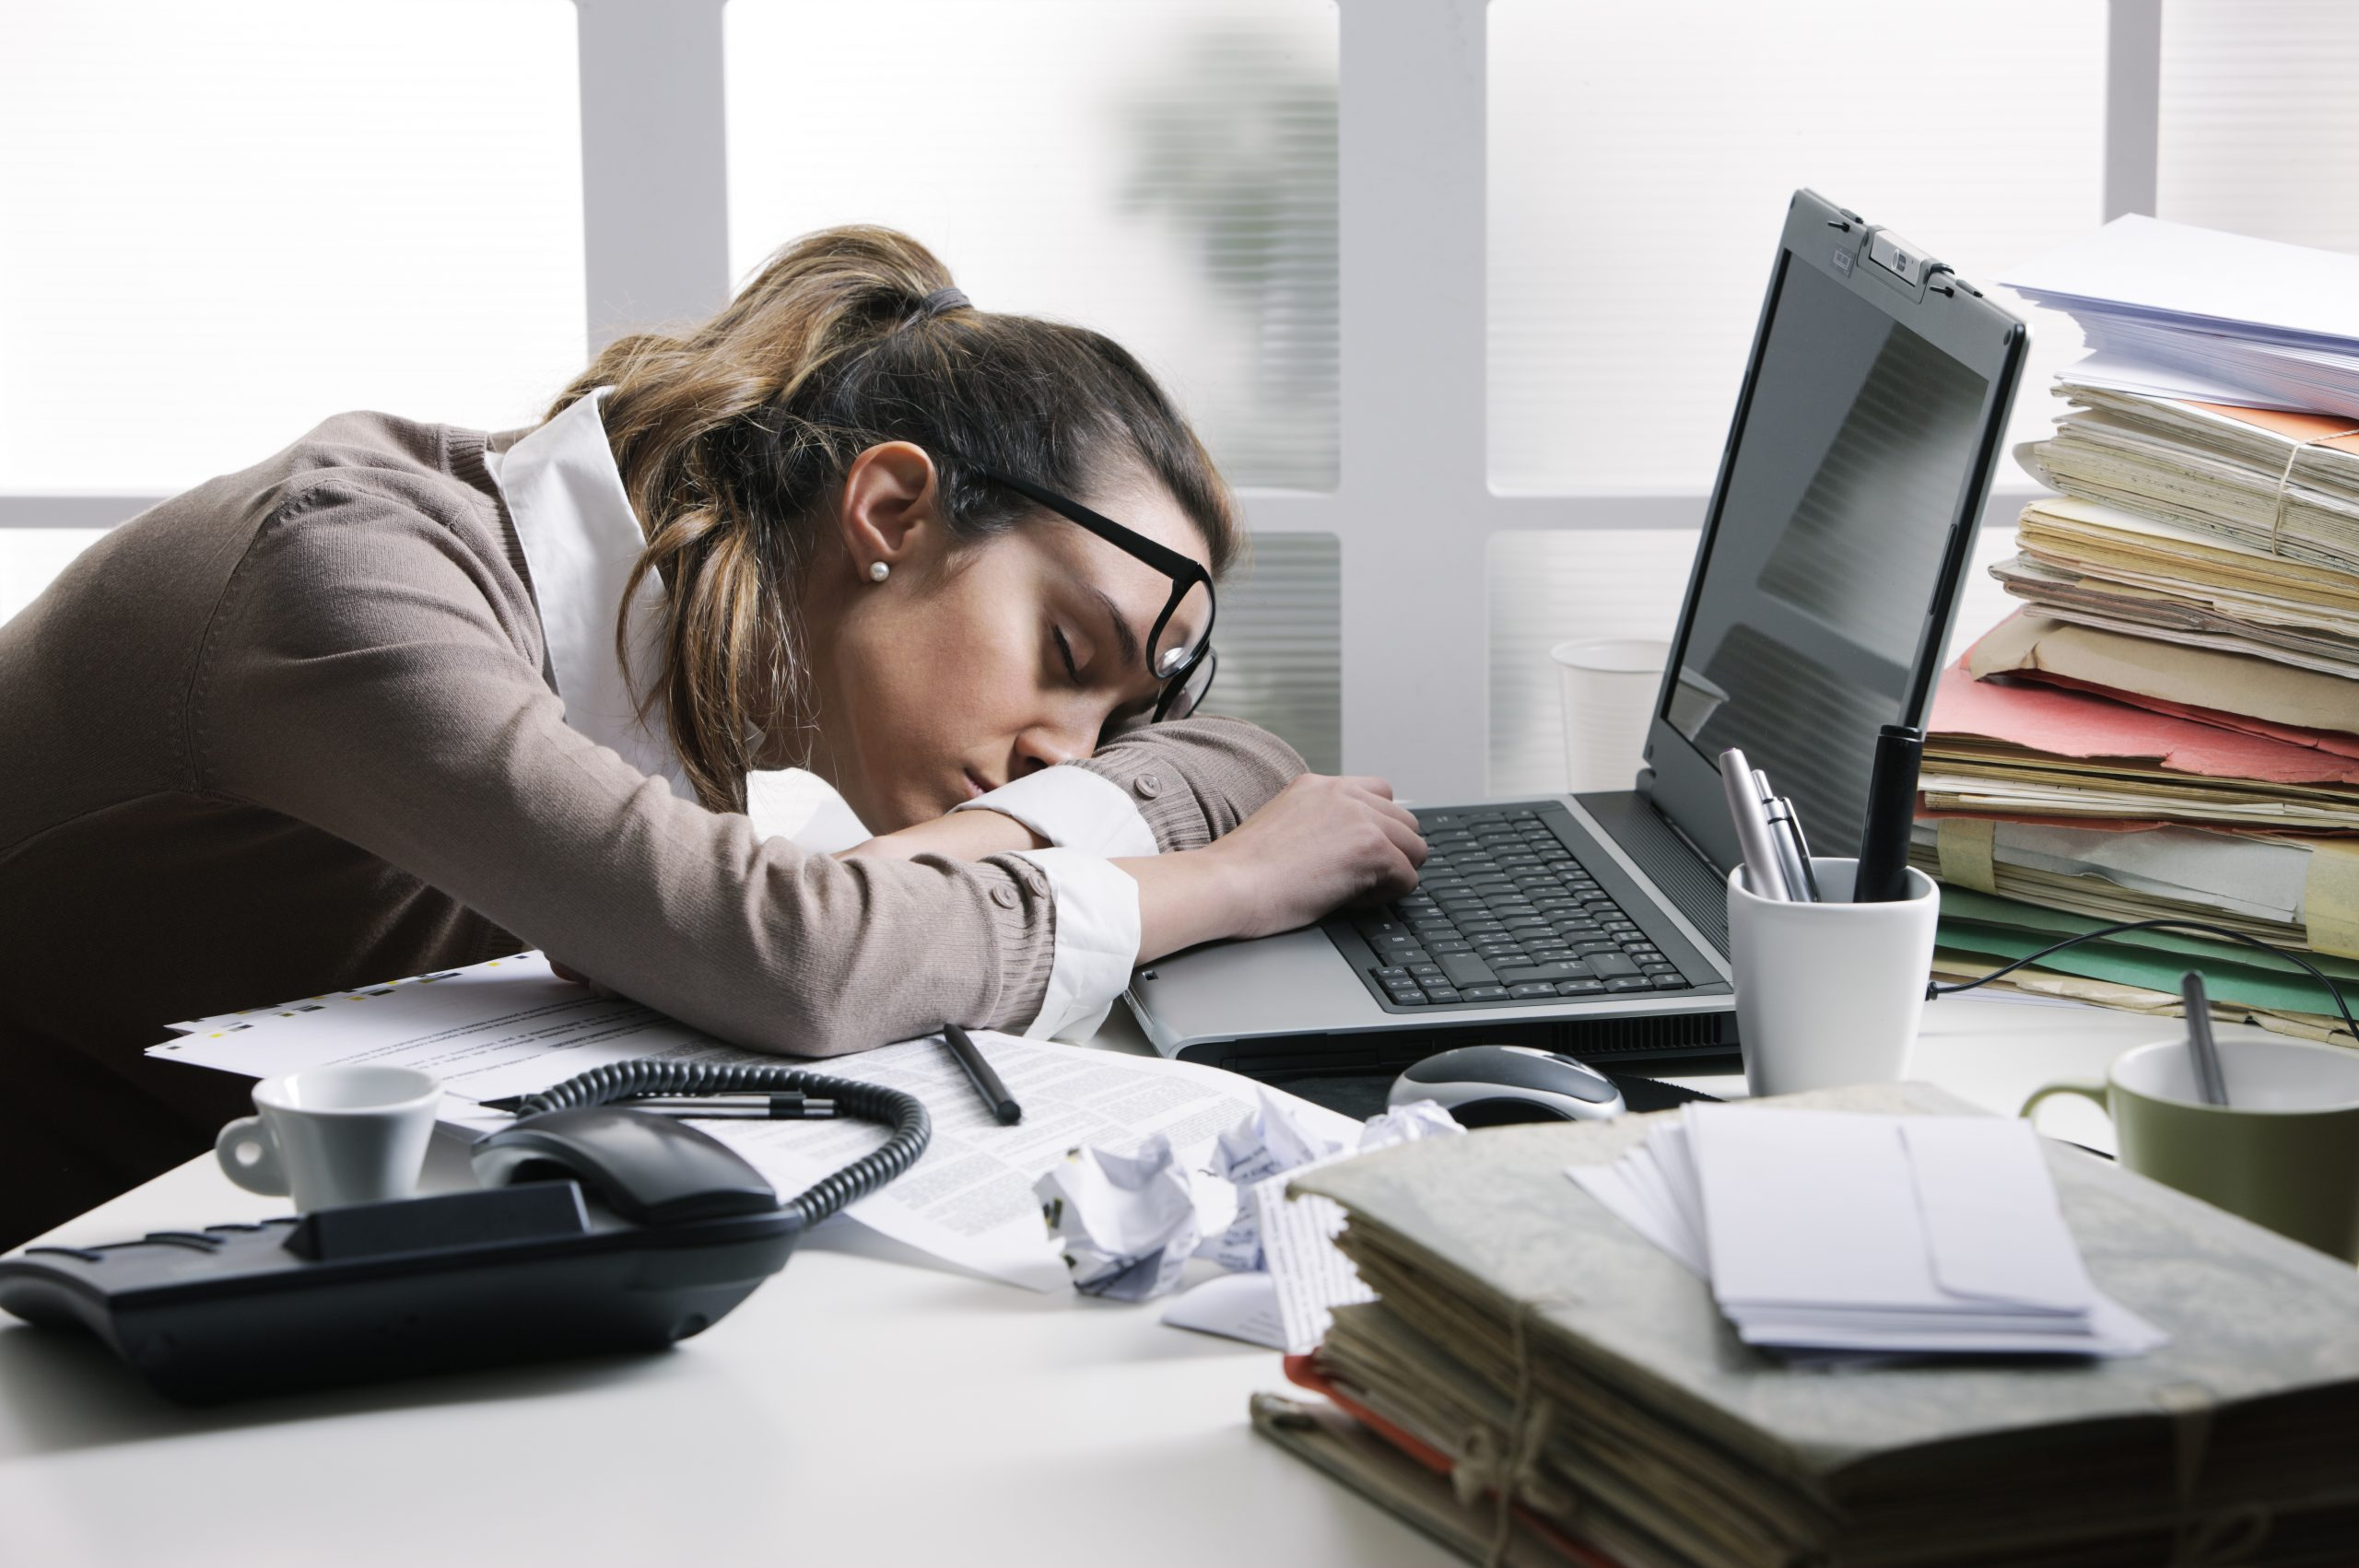 Tired businesswoman sleeping on the desk, in front of the computer screen.